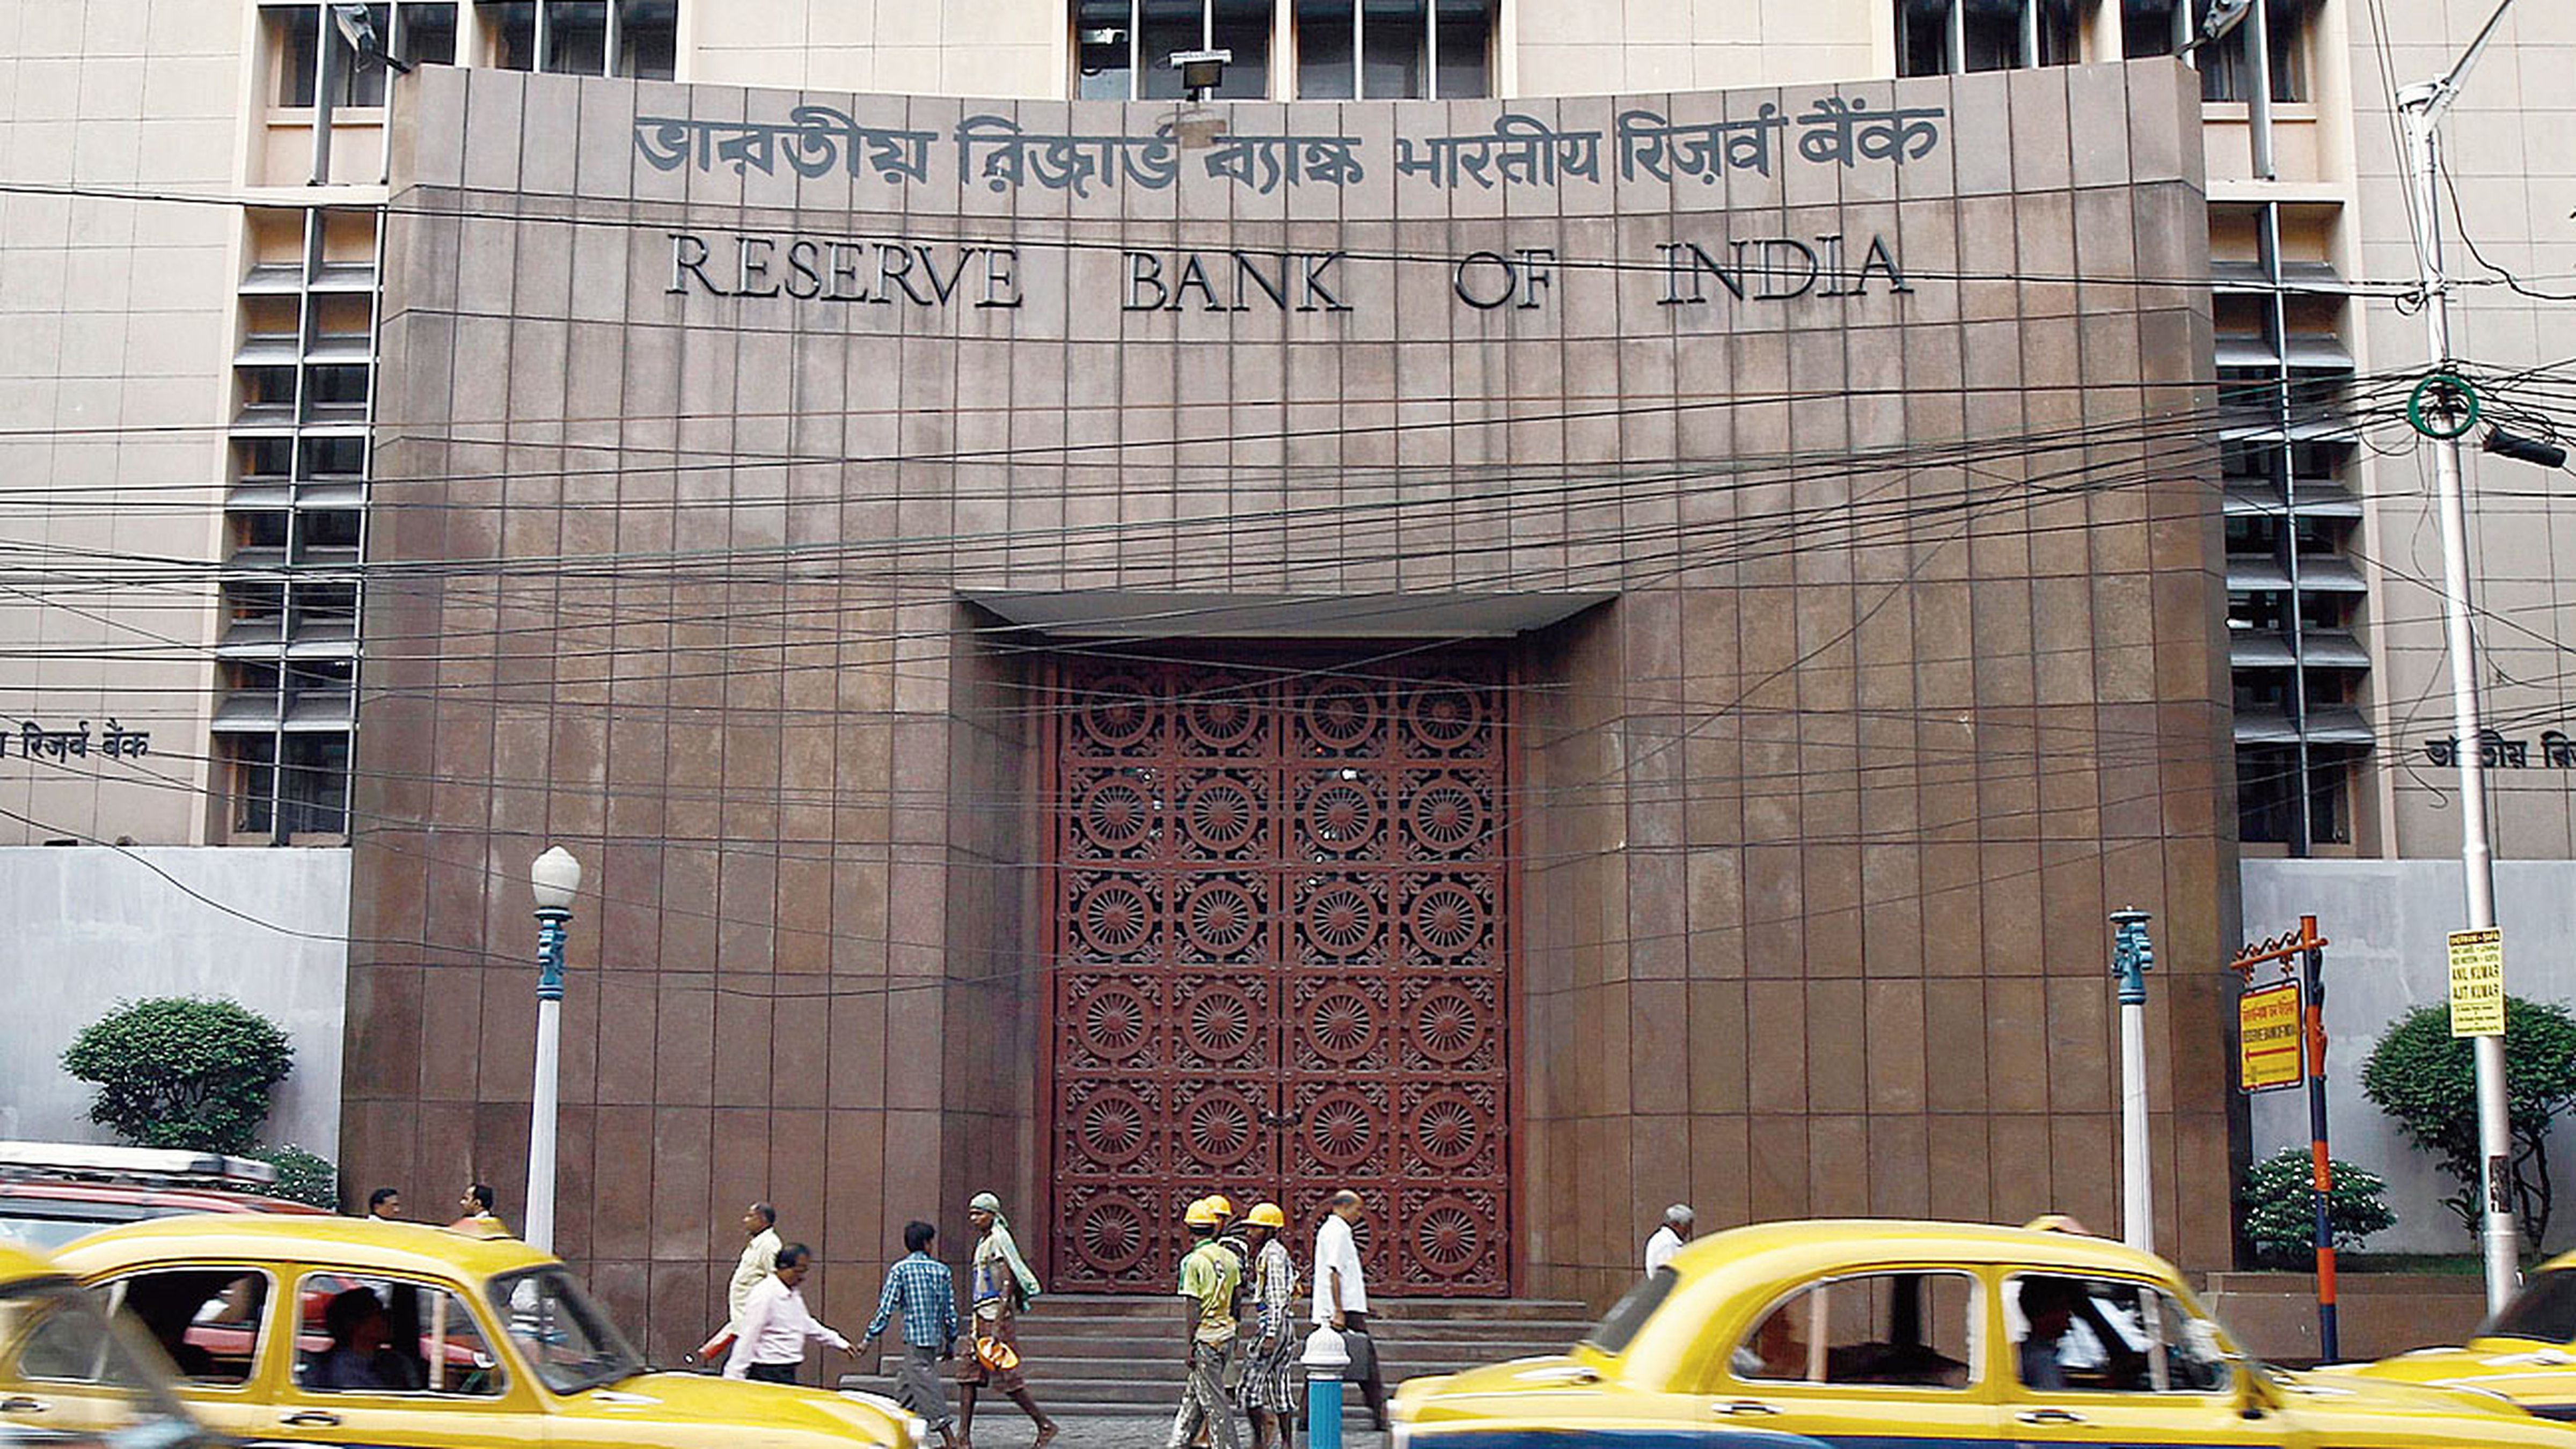 The Reserve Bank of India recently flagged Rs 110 billion worth of non-performing assets under the Pradhan Mantri Mudra Yojana scheme.